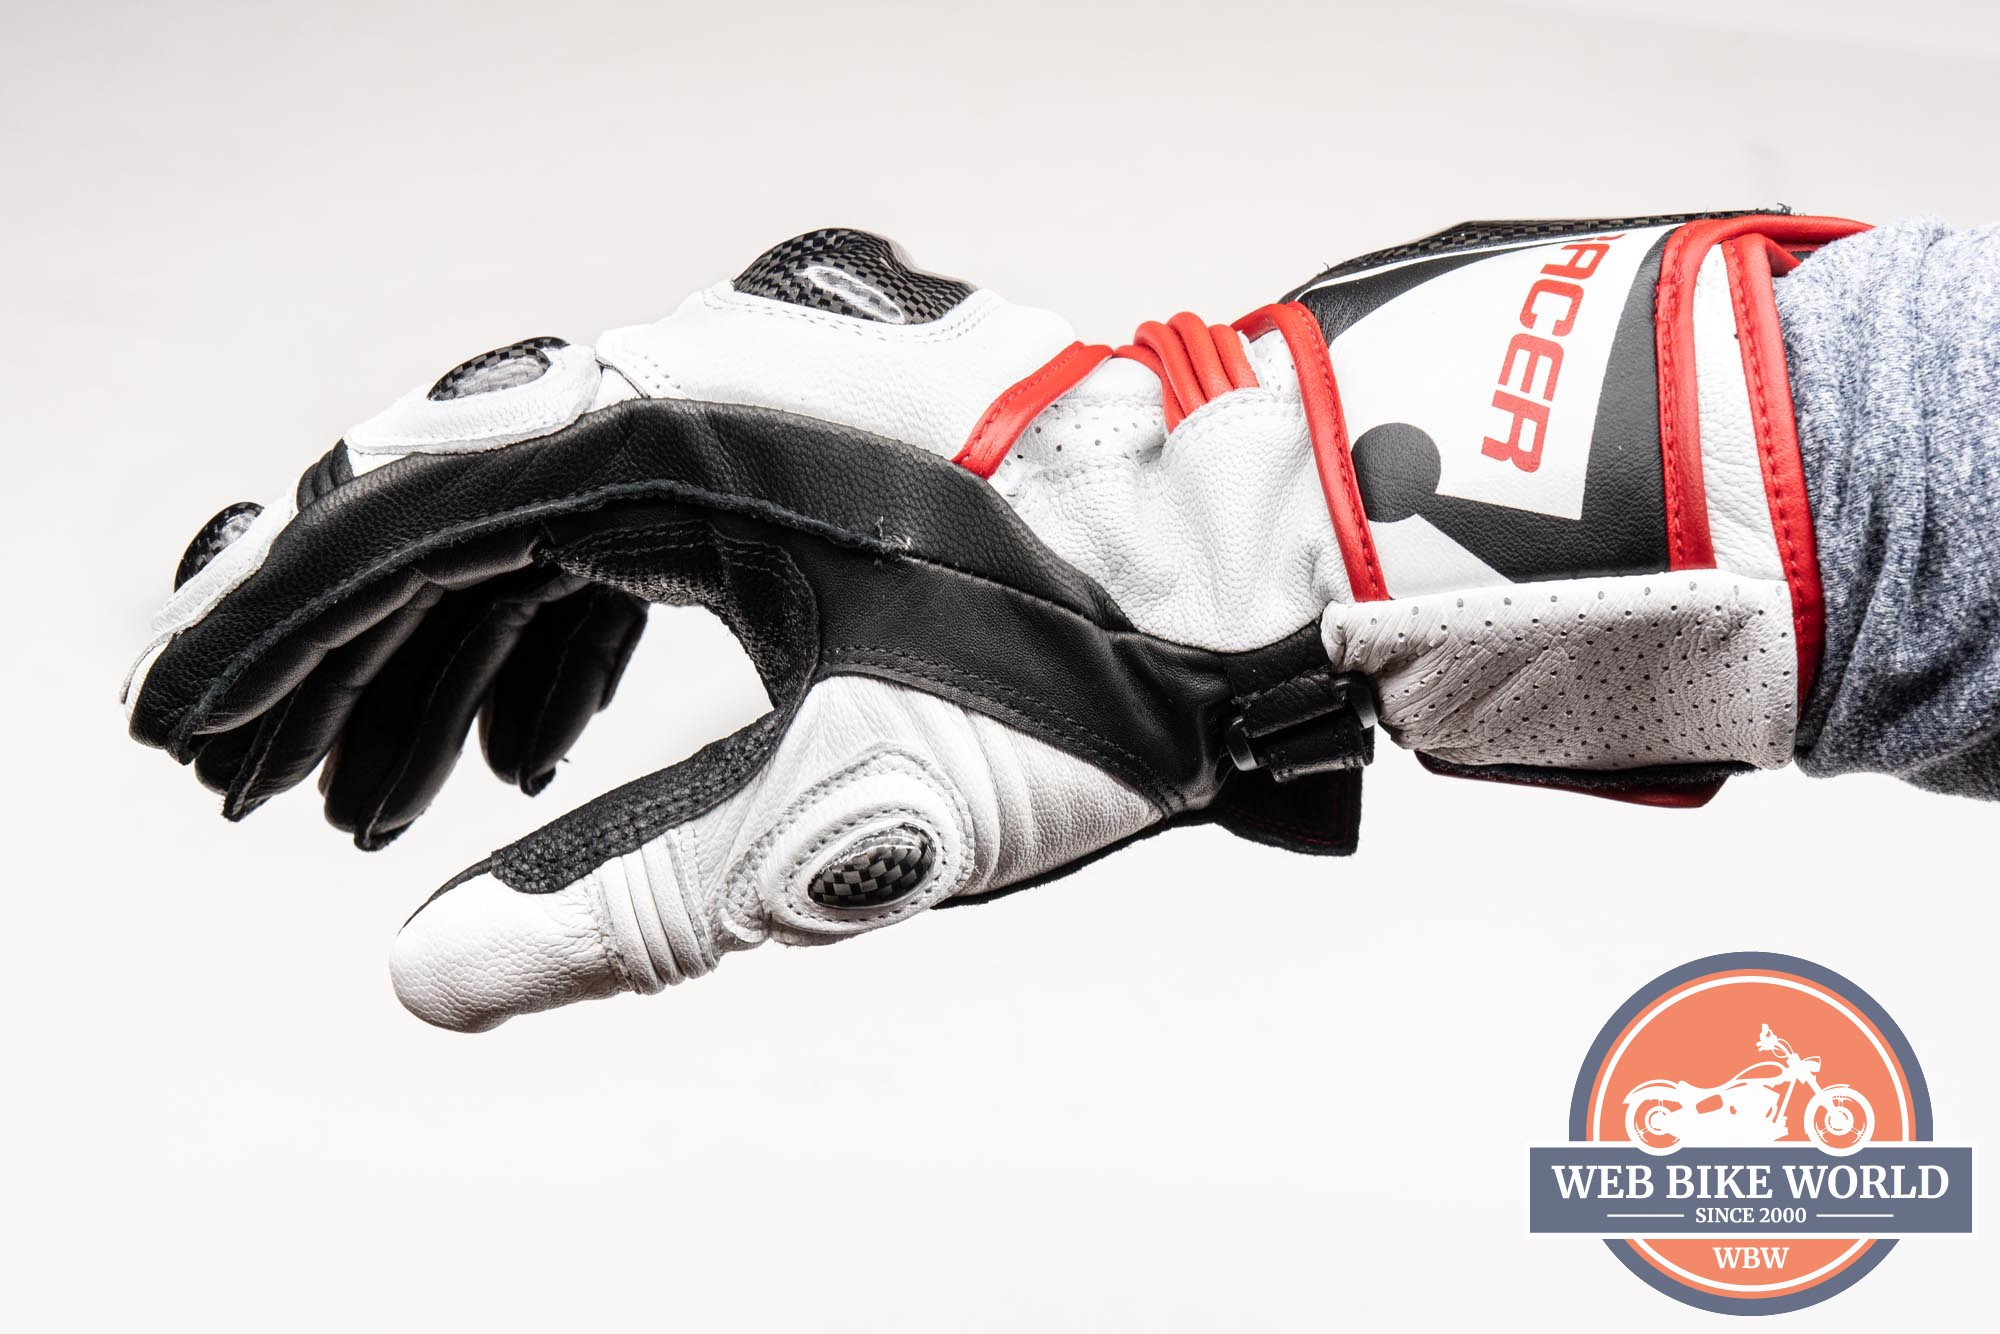 Left side view of the Hi Per glove